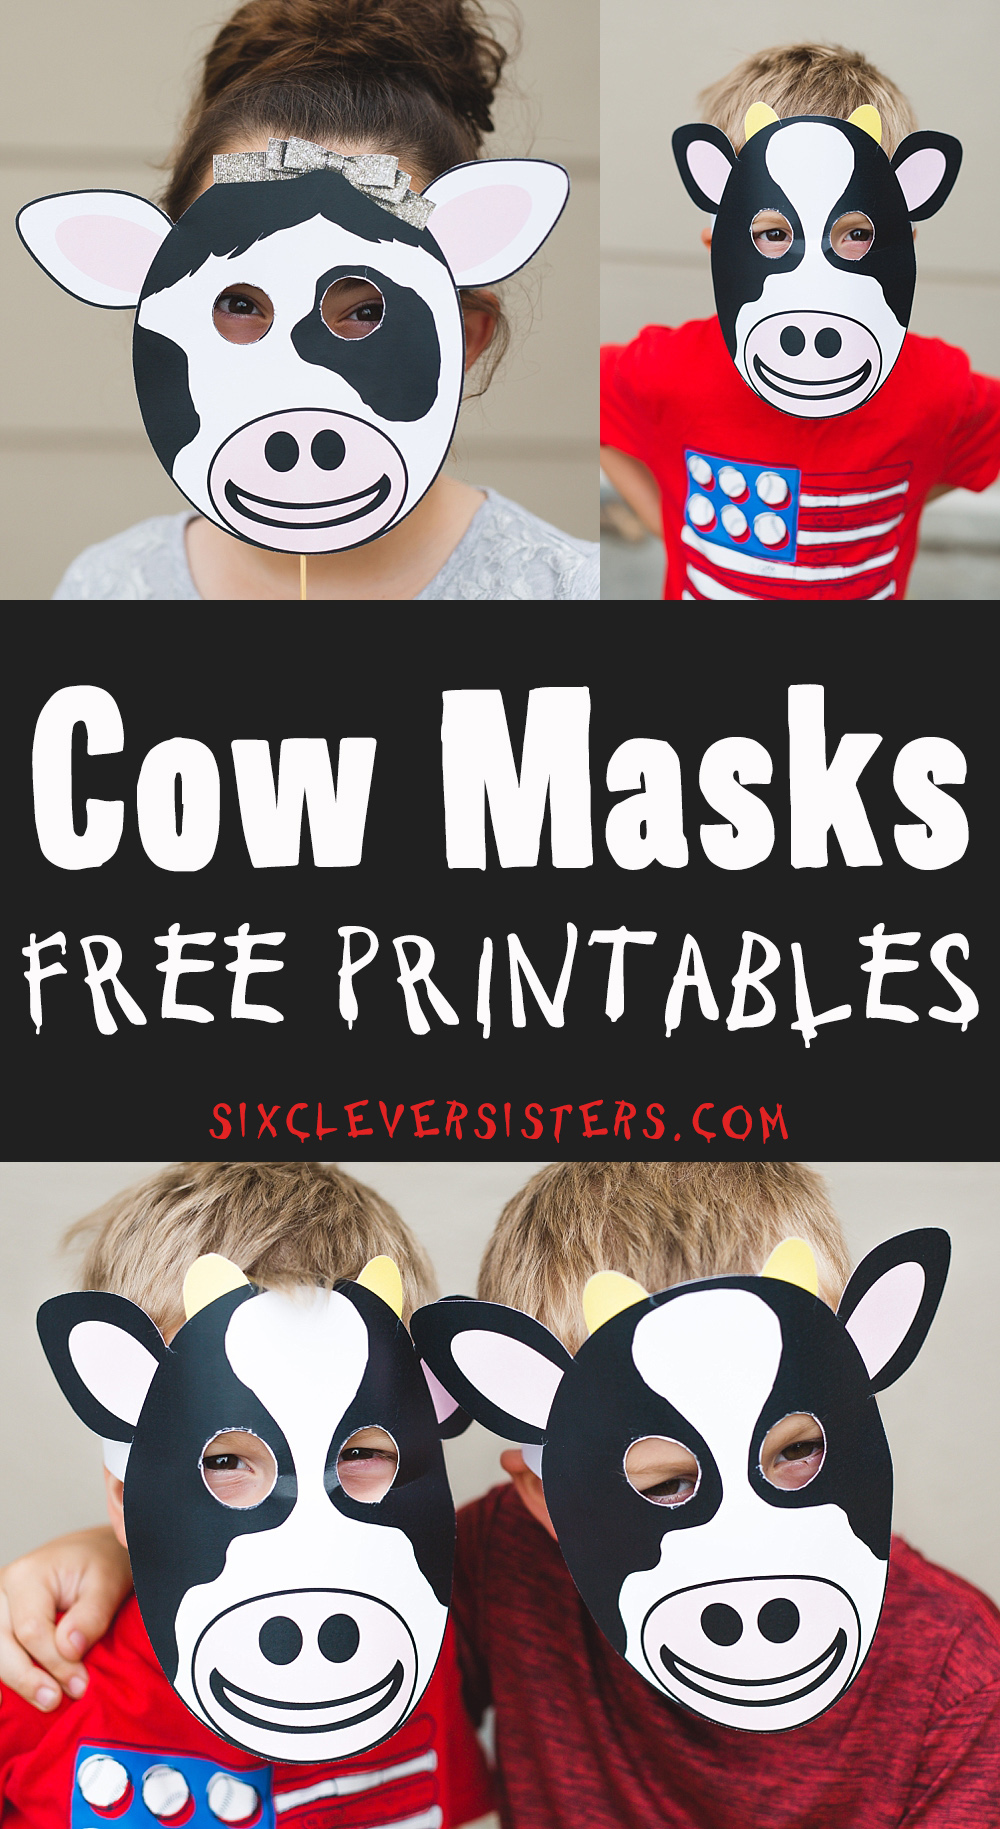 photograph relating to Free Printable Cow Mask named Chick Fil A Cow Mask - 6 Sensible Sisters